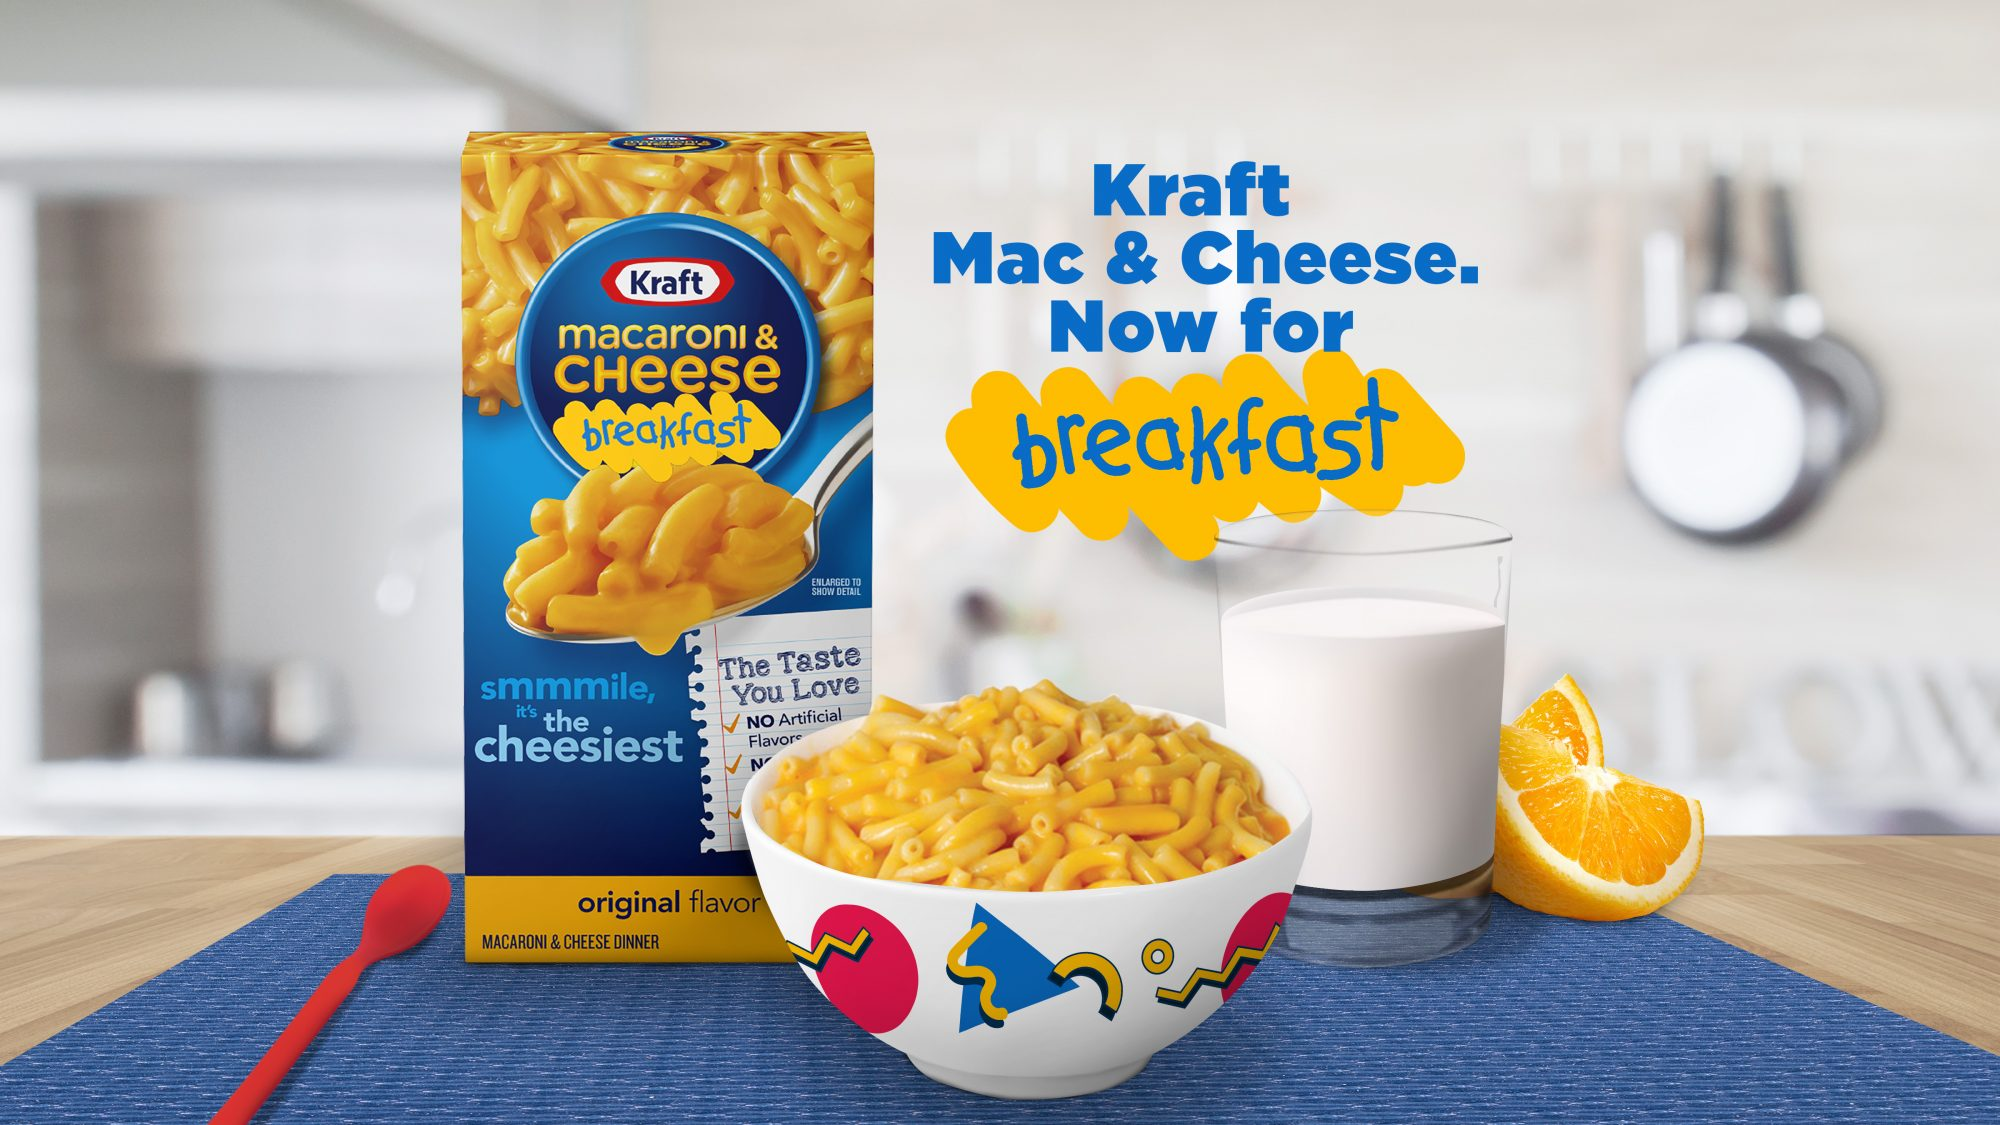 a box of Kraft macaroni and cheese sits behind a bowl of cheesy pasta with a glass of milk and orange slices